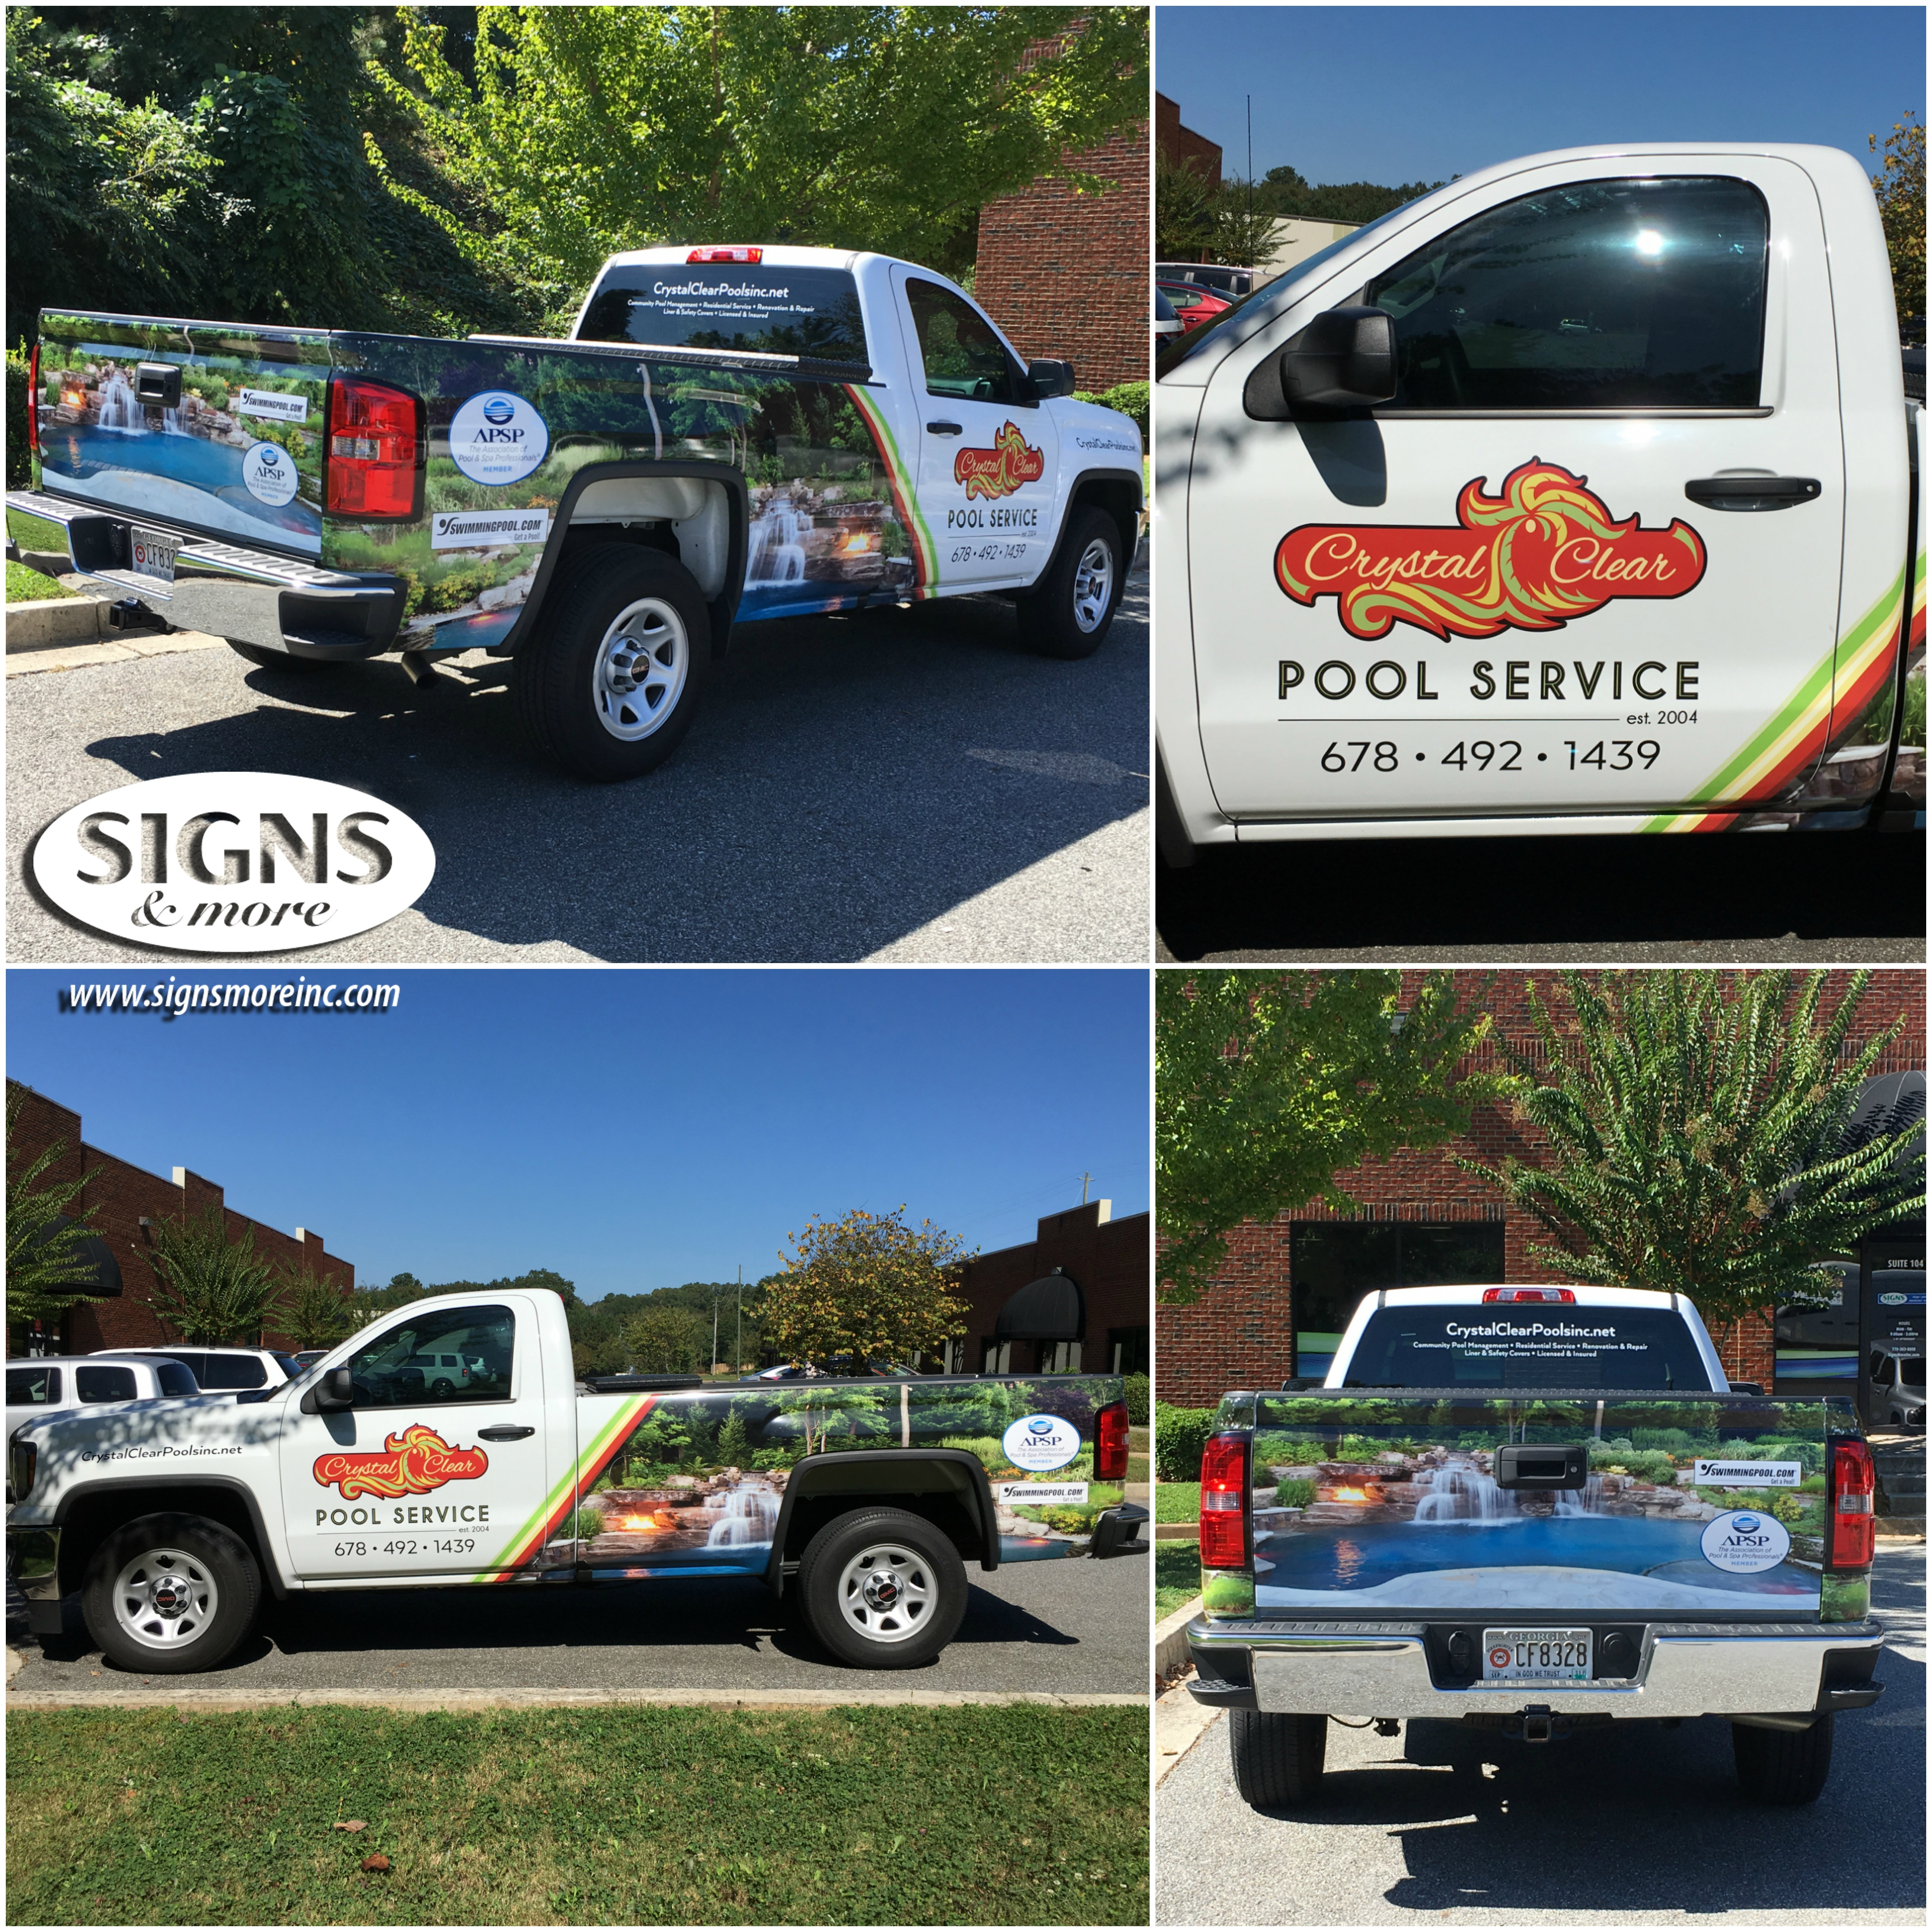 Crystal_Clear_Pools_Partial_Wrap_Pickup_Truck.jpg